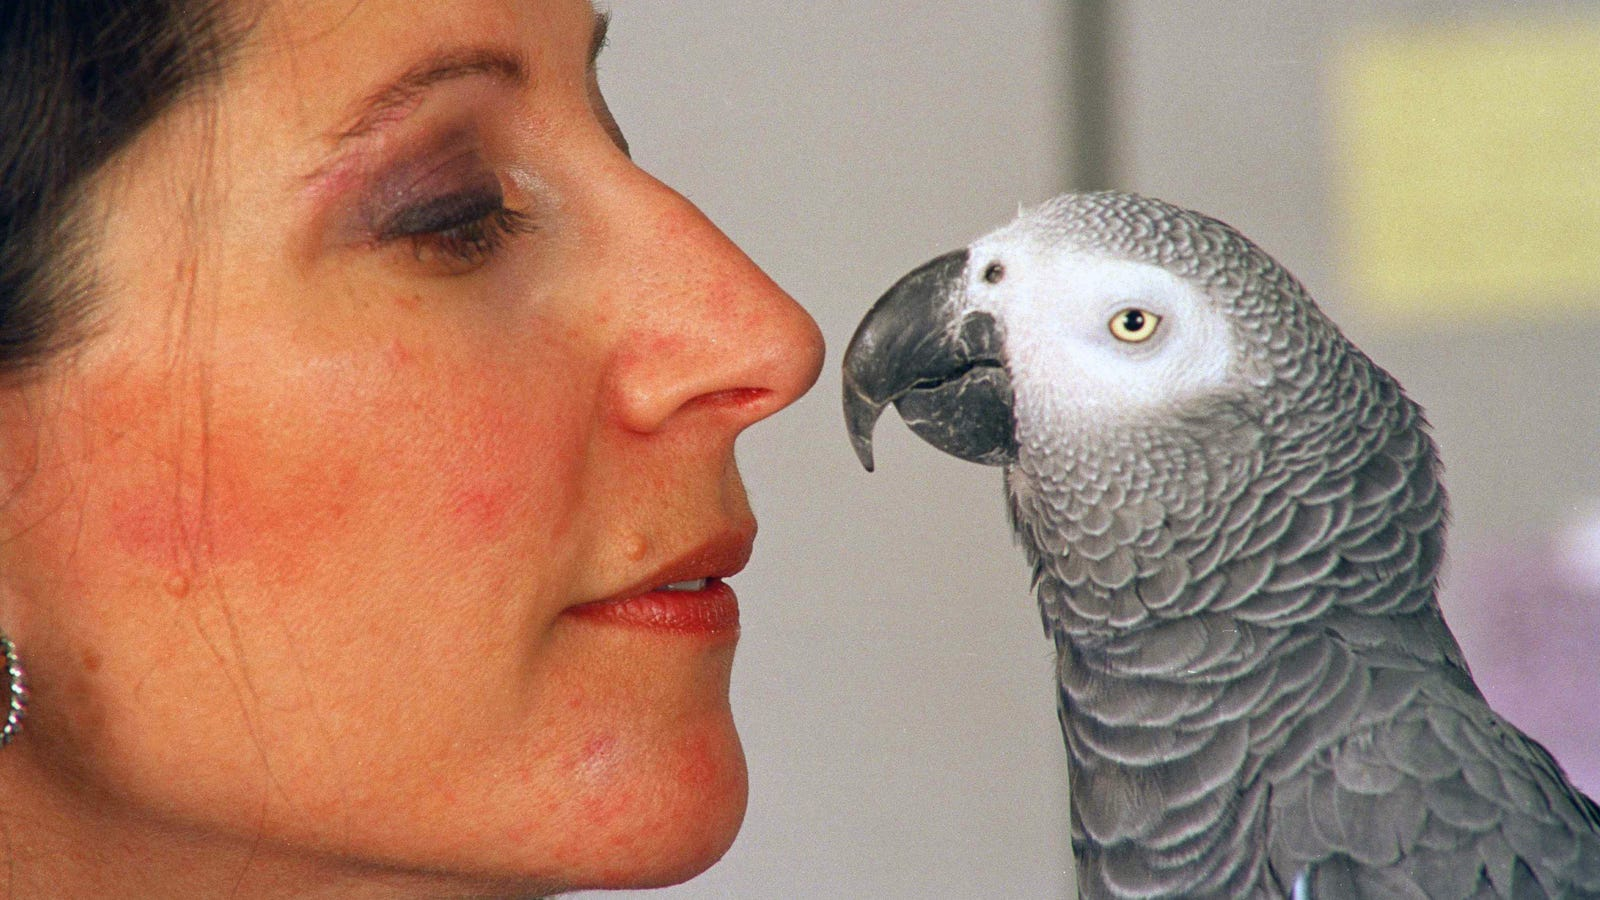 Dc5n united states software in english created at 2018 07 06 0004 parrots are known for their intelligence but why they should be so much smarter than other birds isnt entirely clear new research suggests parrots have fandeluxe Gallery